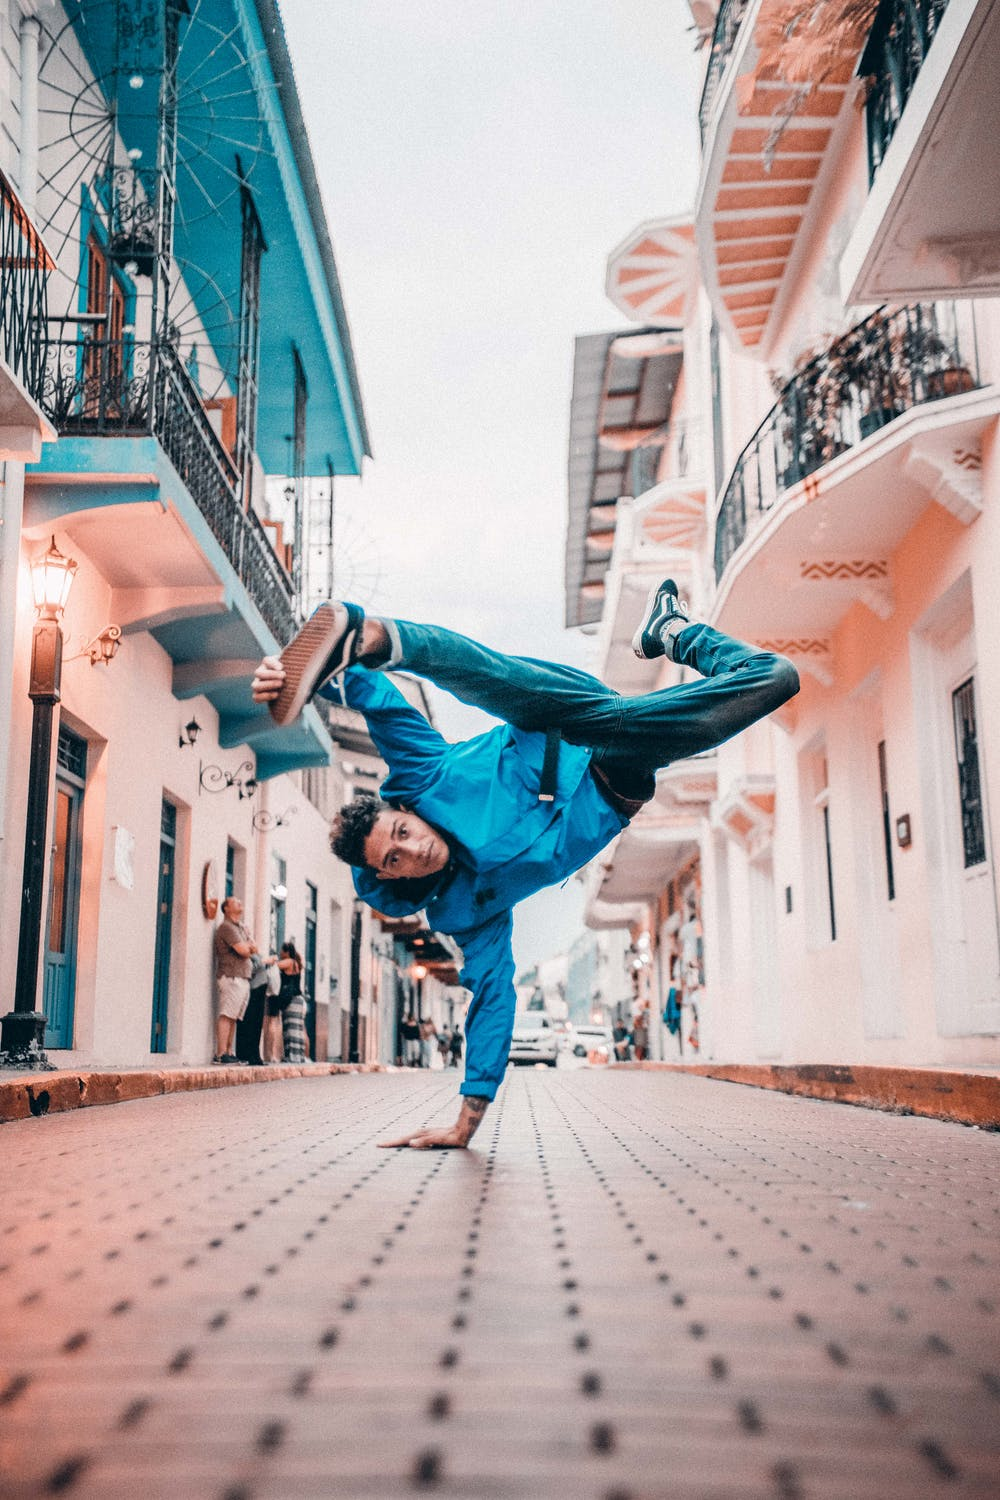 Man Break Dancing On Street